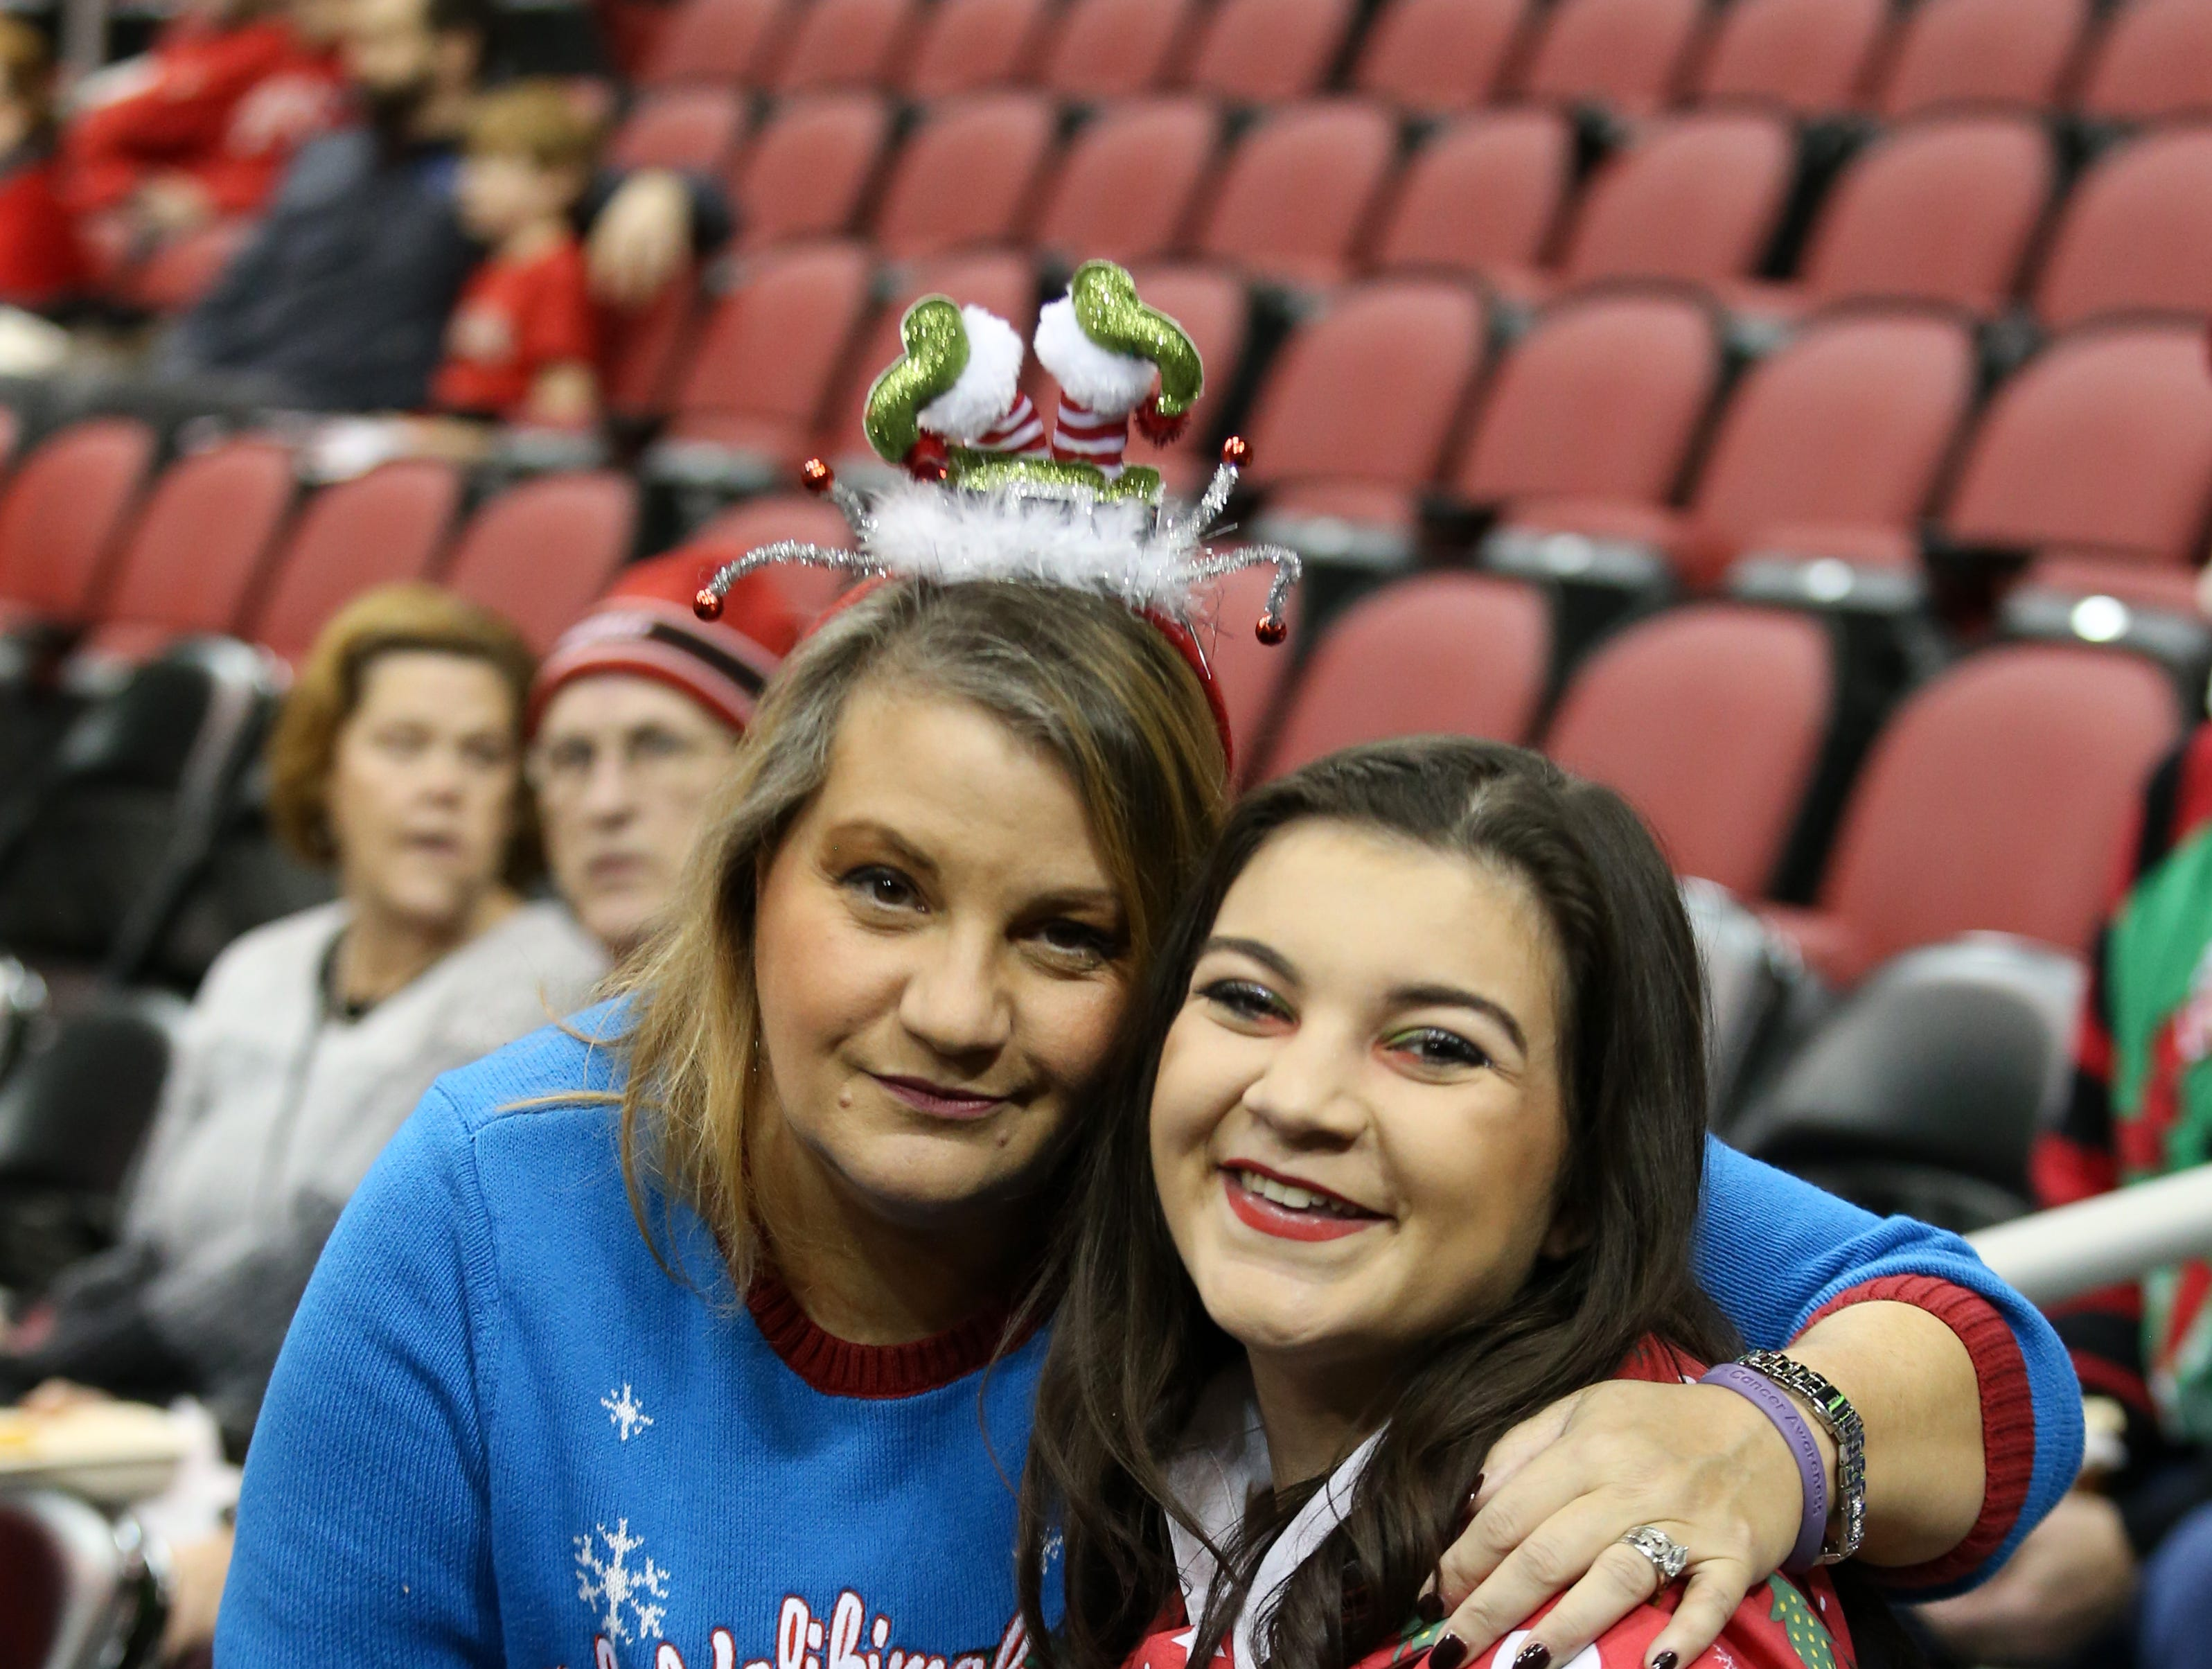 Many of the fans at the Louisville vs UT Martin joined in on the Ugly Christmas Sweater night.   